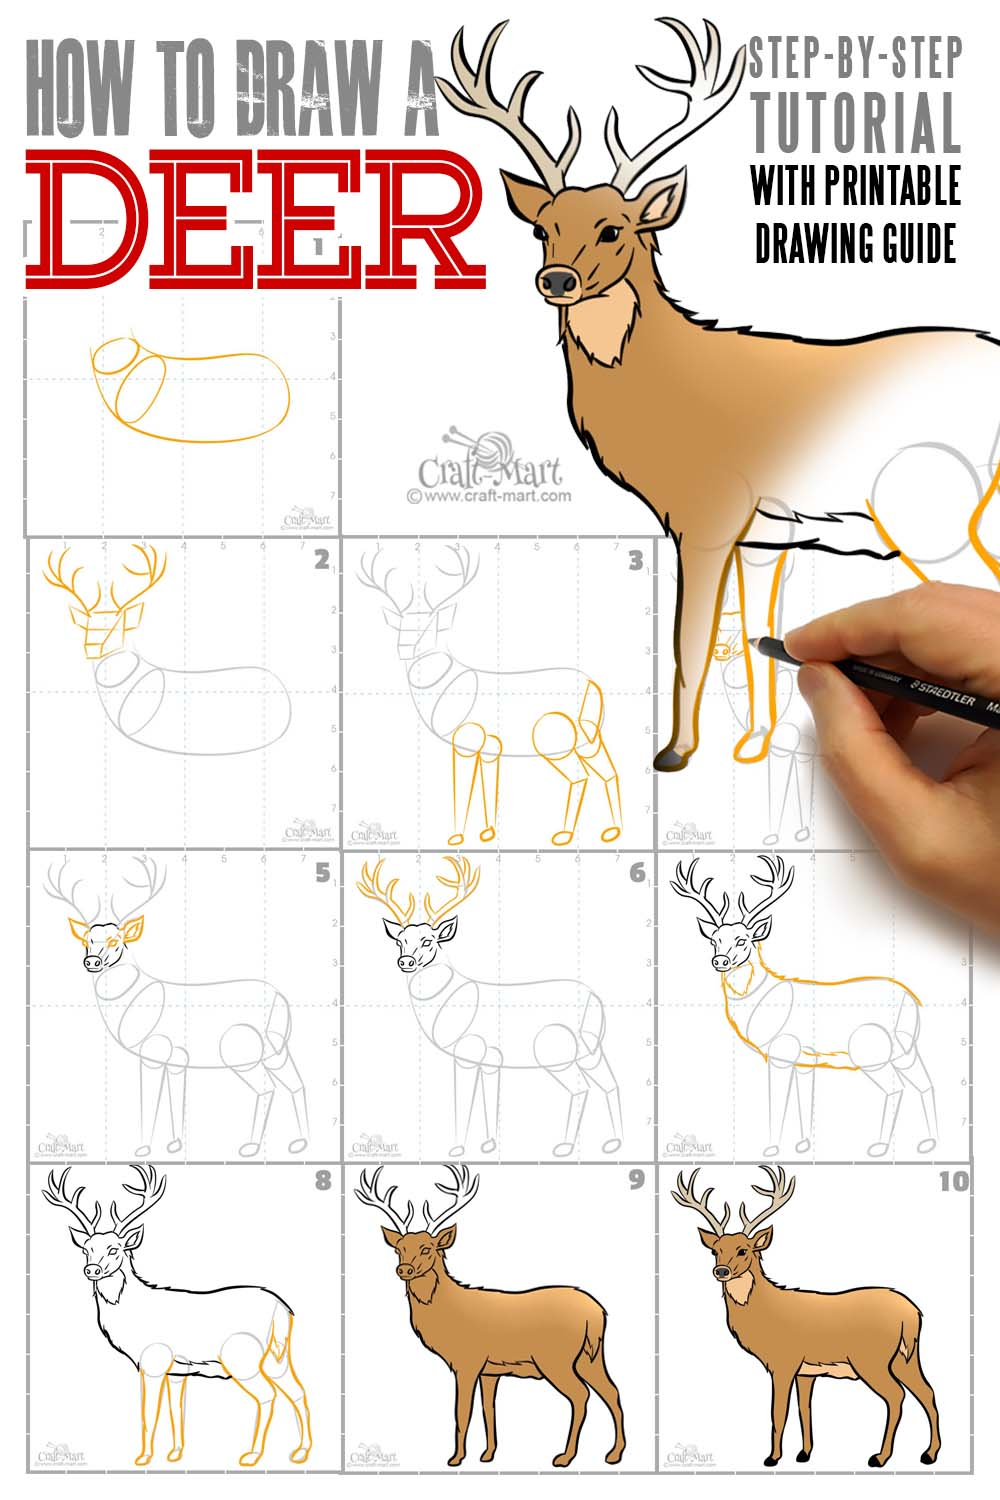 how to draw a deer tutorial